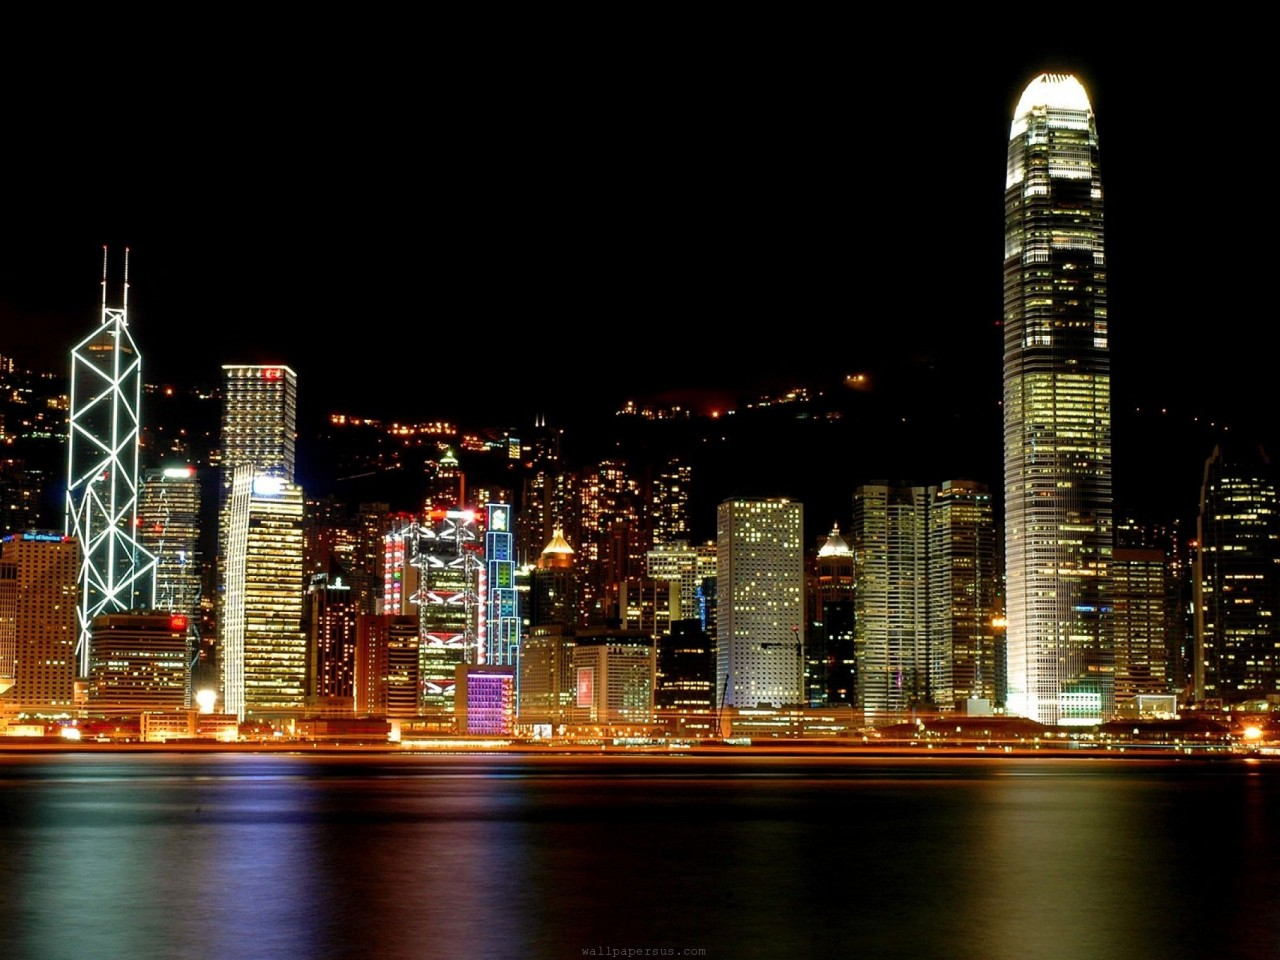 Hong Kong  Architecture  city  colors  cool  night  scene  sea HD Wallpaper